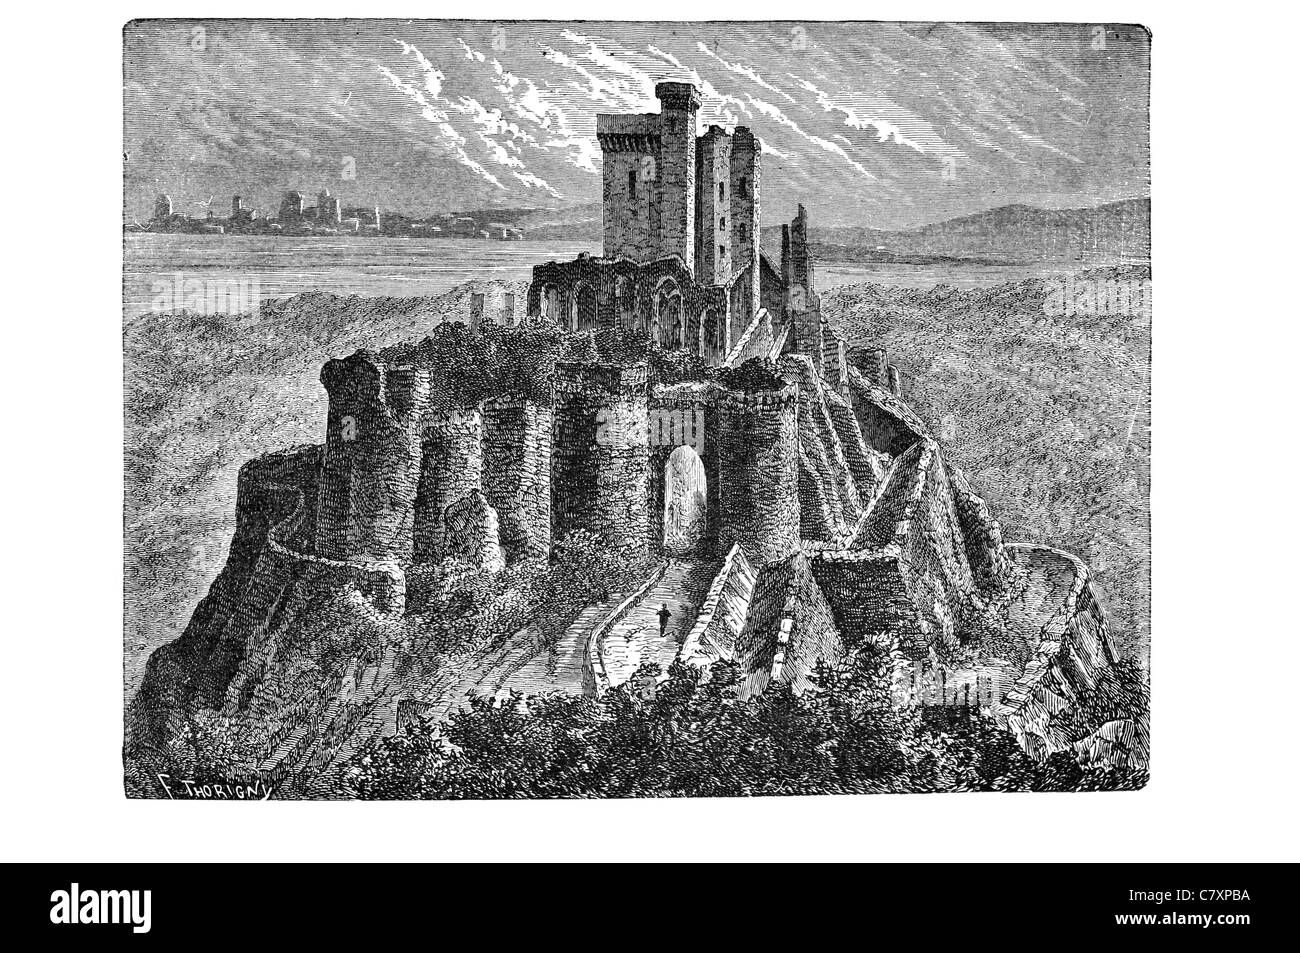 château d'arques ruin ruined ruins Castle castles fortification bastion palace tower stronghold citadel - Stock Image